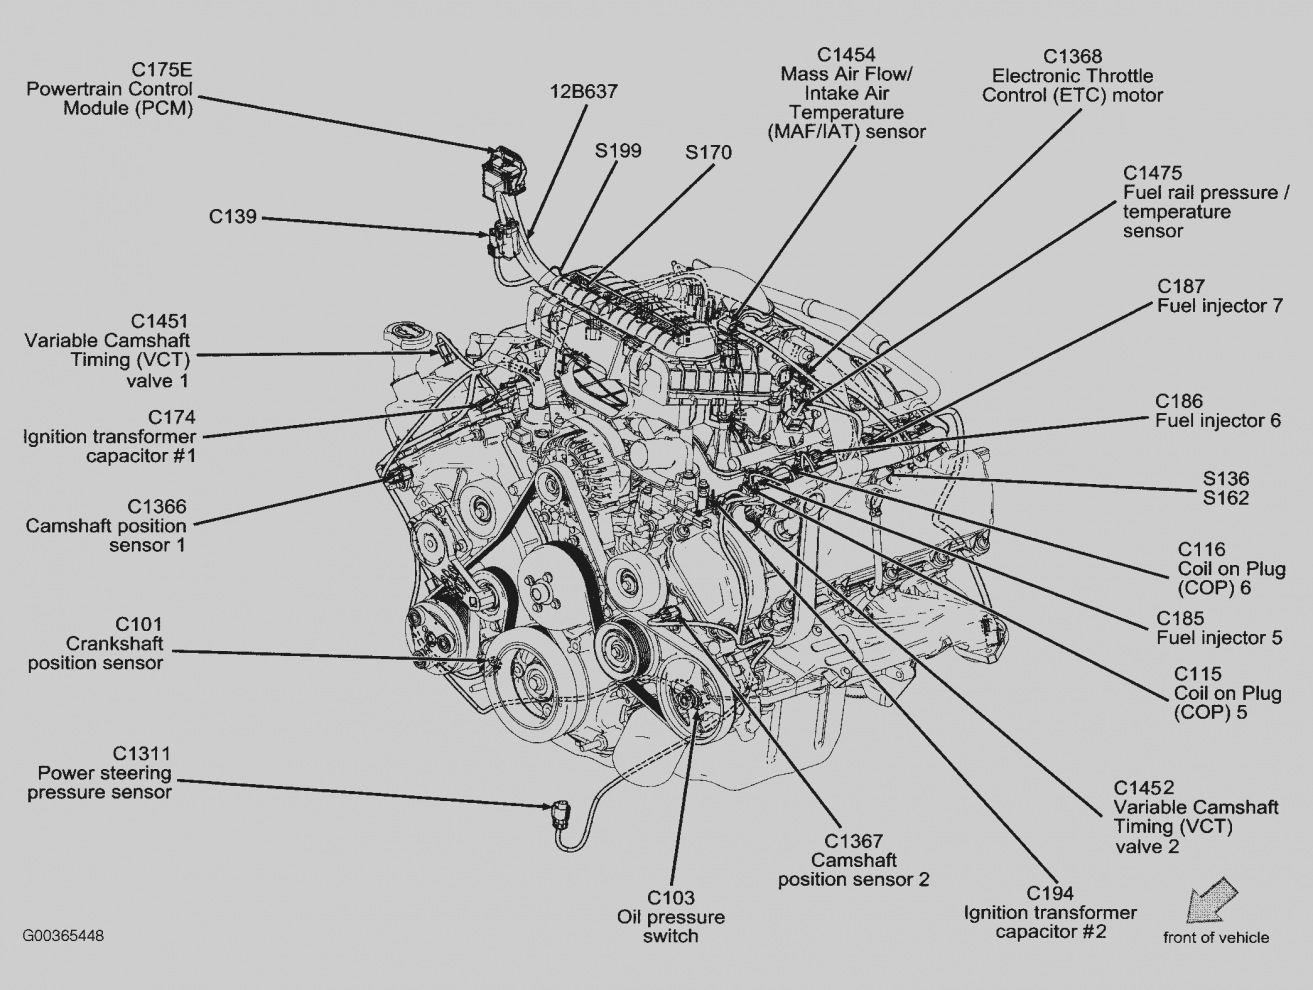 2010 f150 engine diagram wiring diagram inside 2007 ford f150 4 6 engine diagram 2010 f150 engine [ 1313 x 990 Pixel ]